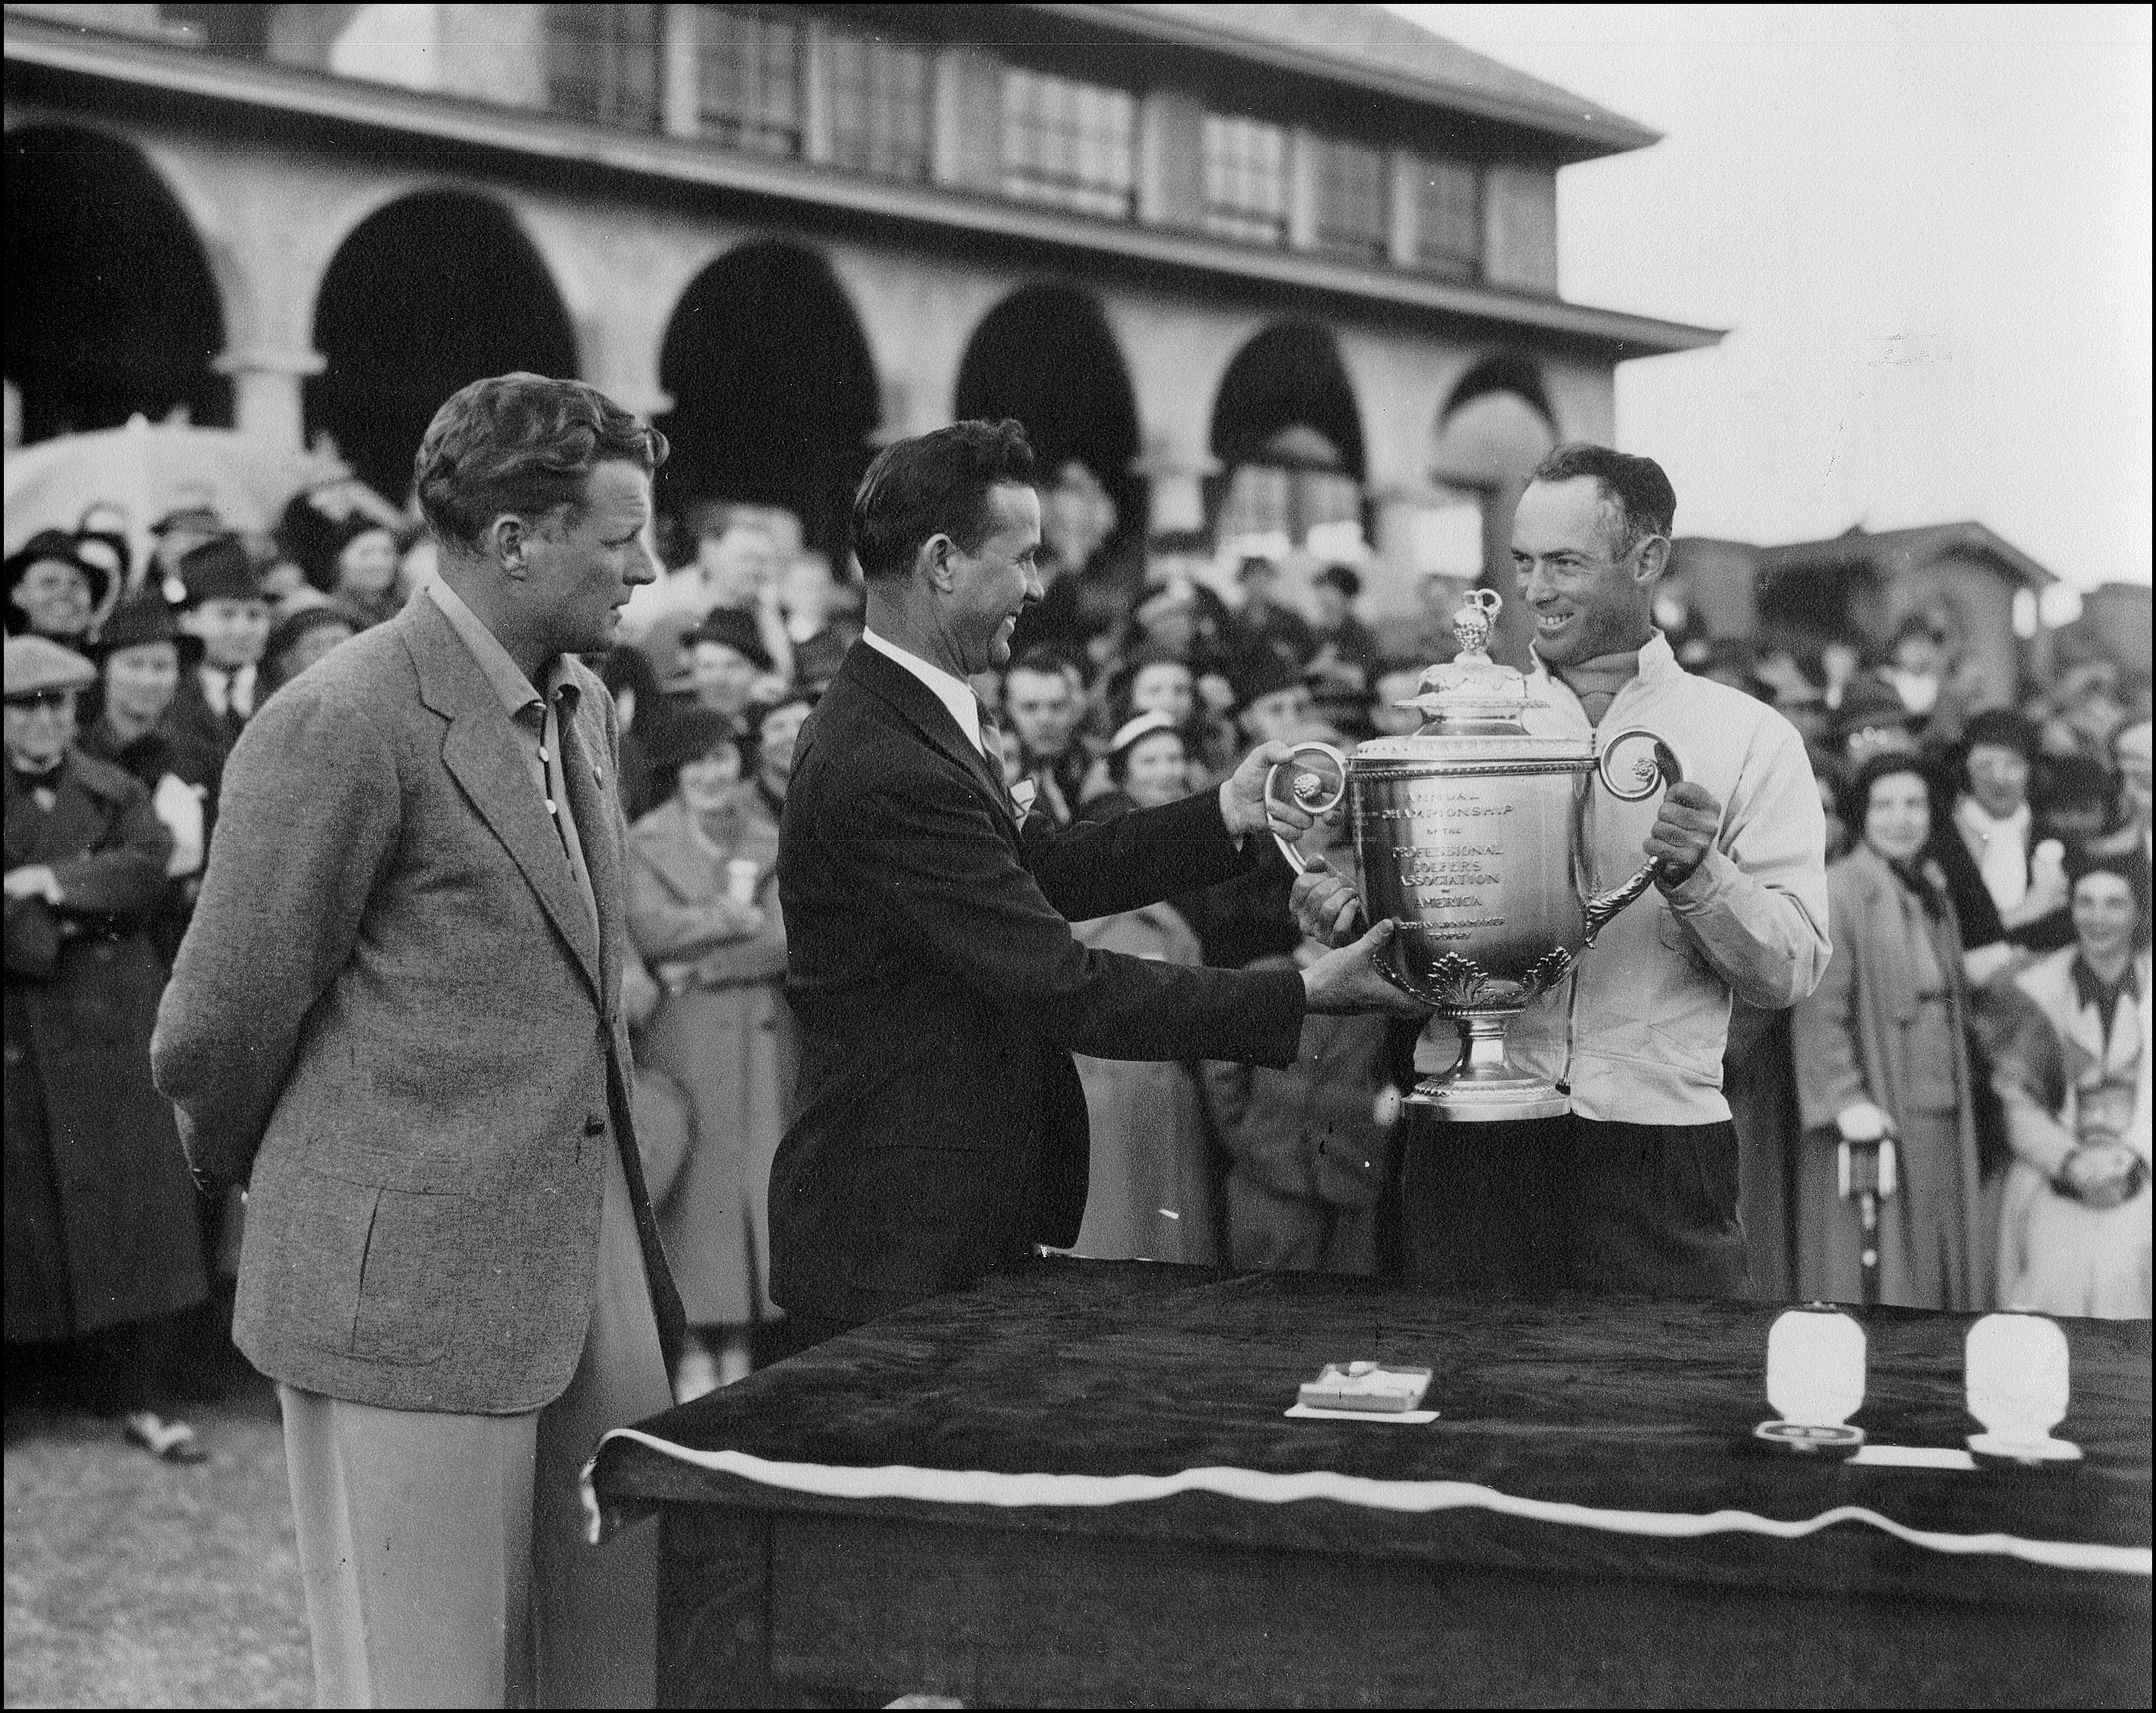 Denny Shute receives the Wanamaker Trophy for winning the 1936 PGA Championship at Pinehurst.